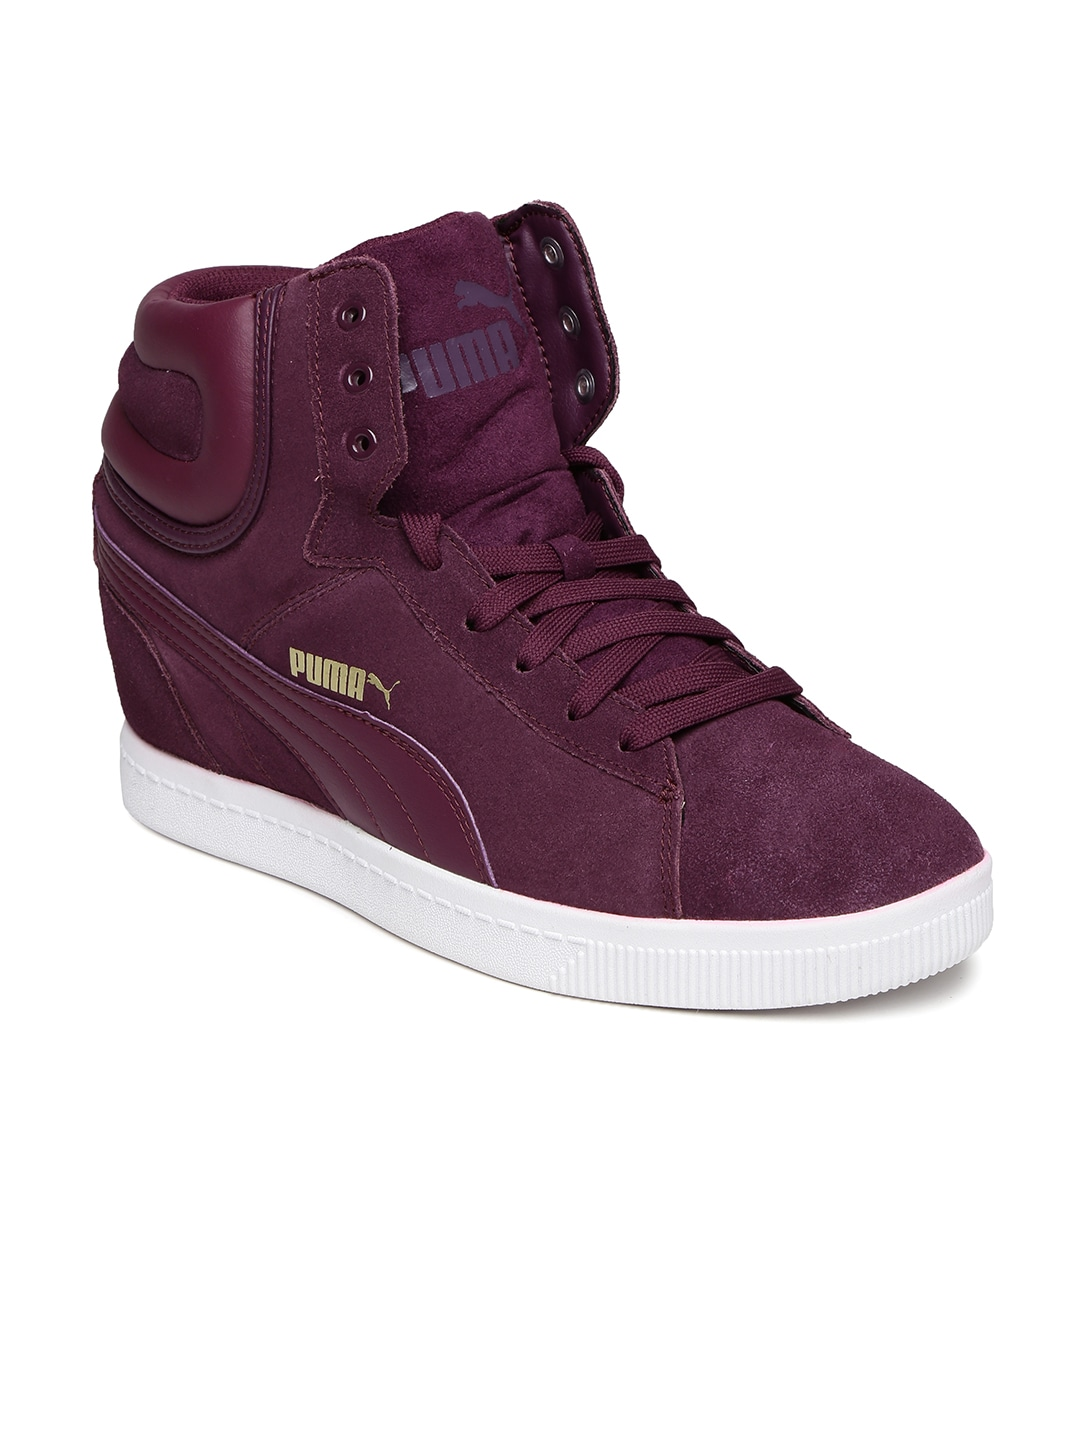 Puma puma vikky wedge Sneakers Purple Casual Shoes Buy